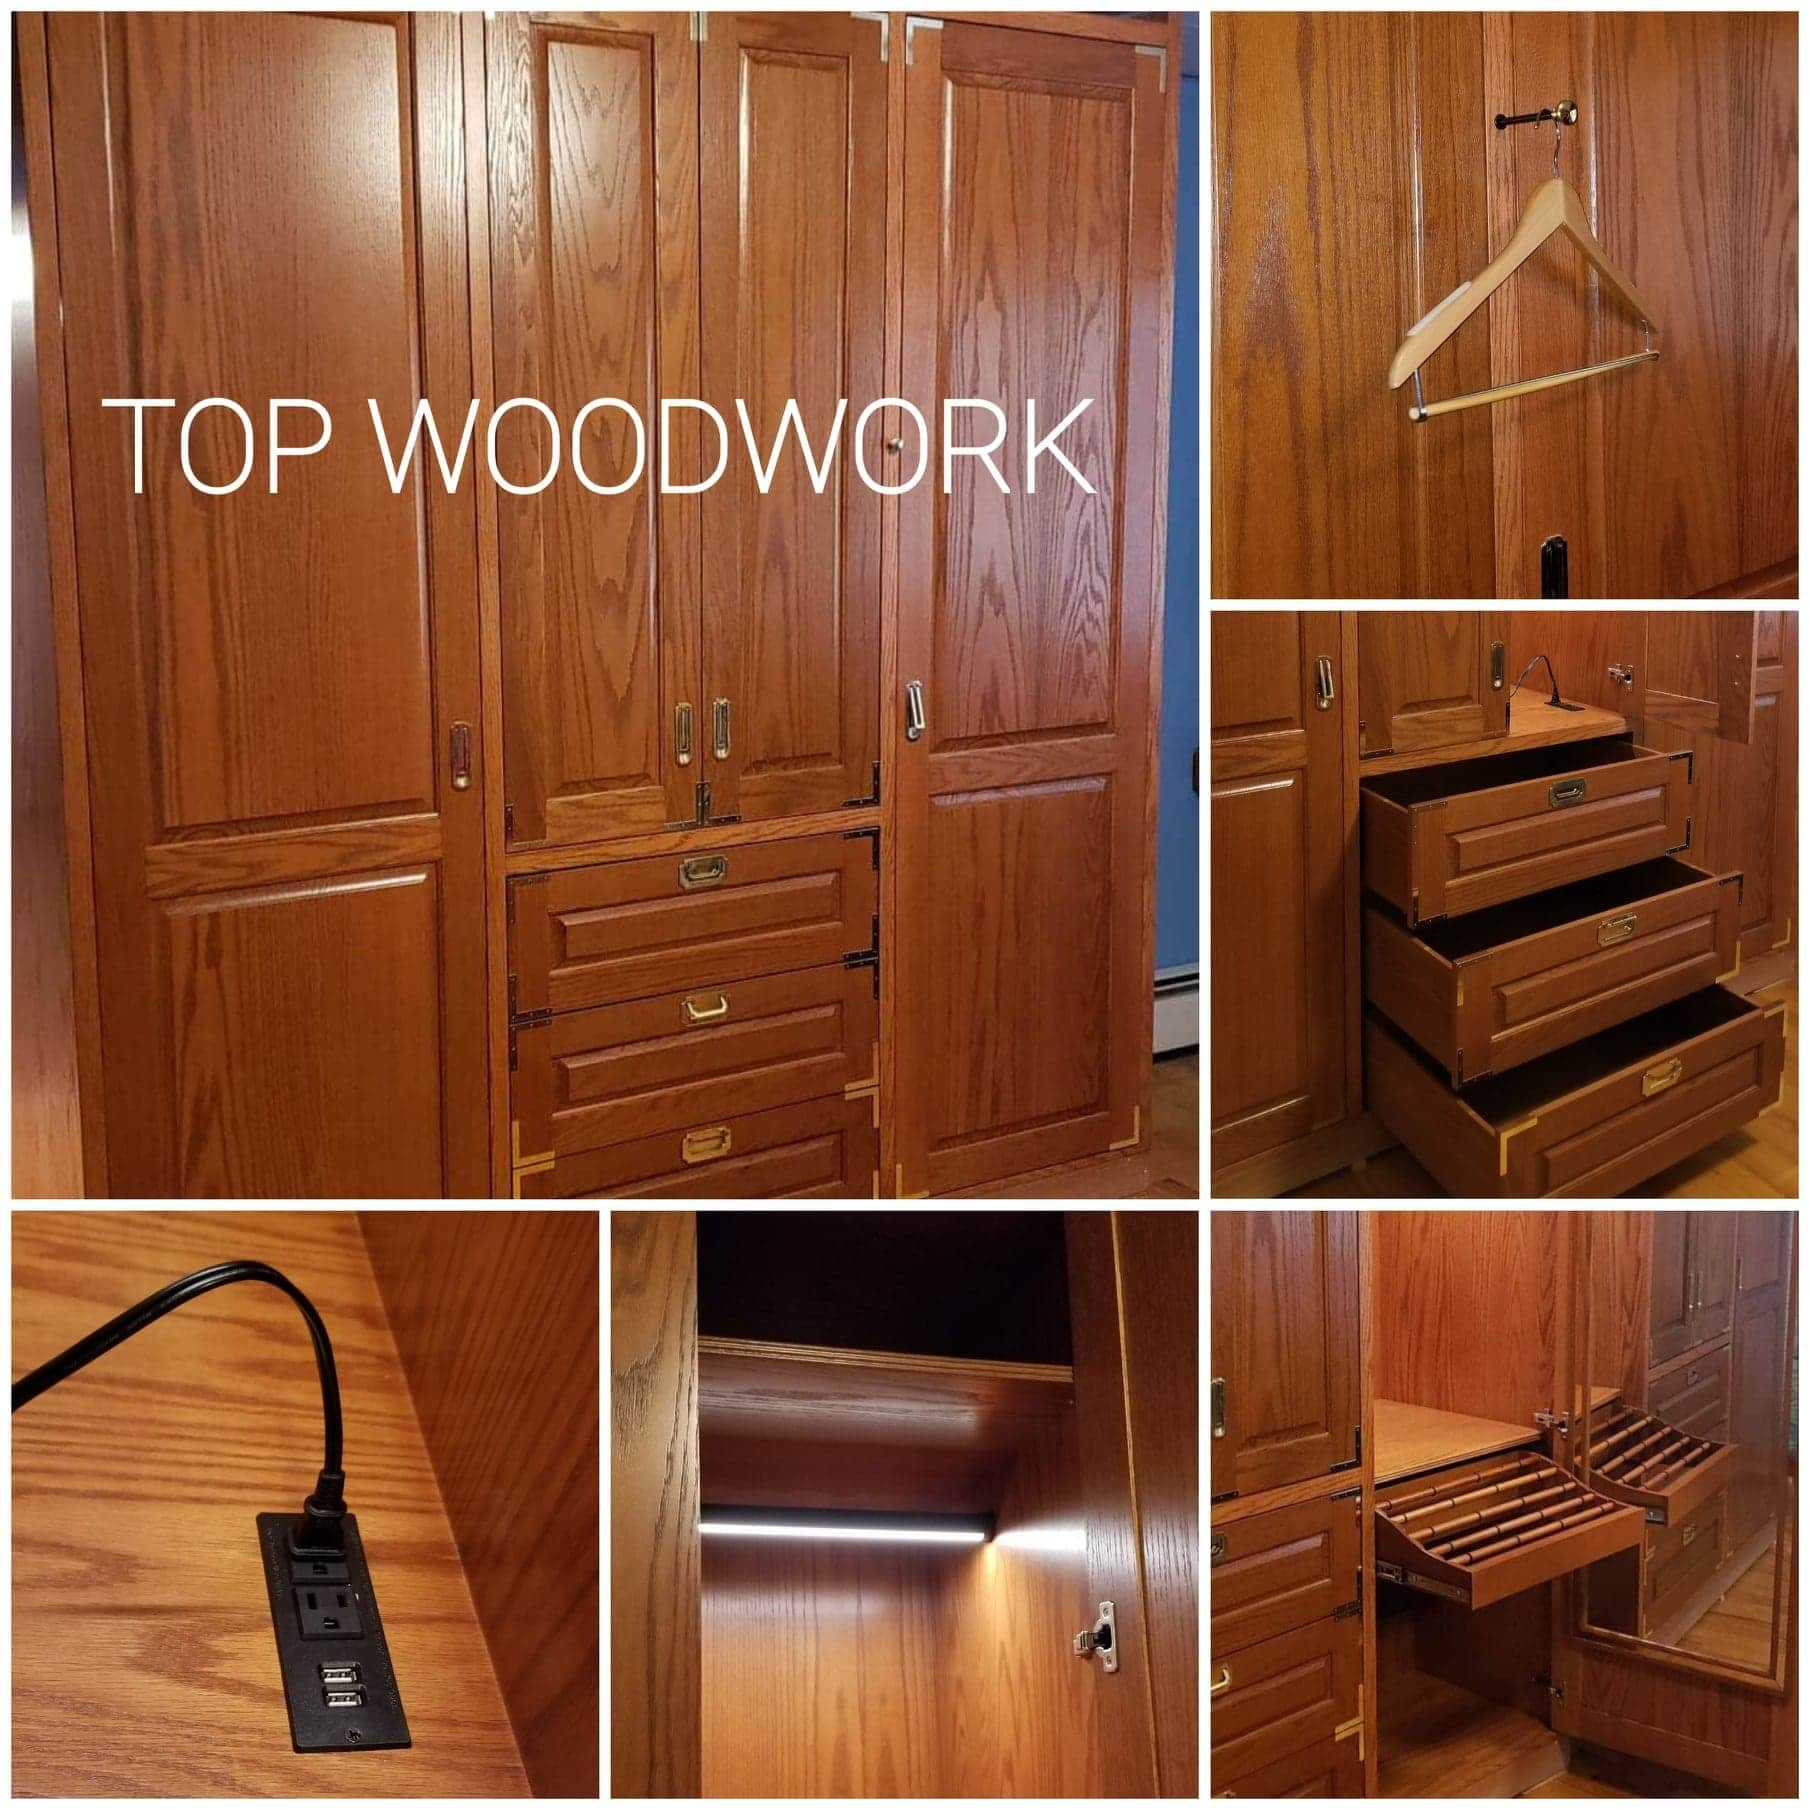 Top Woodwork corp.